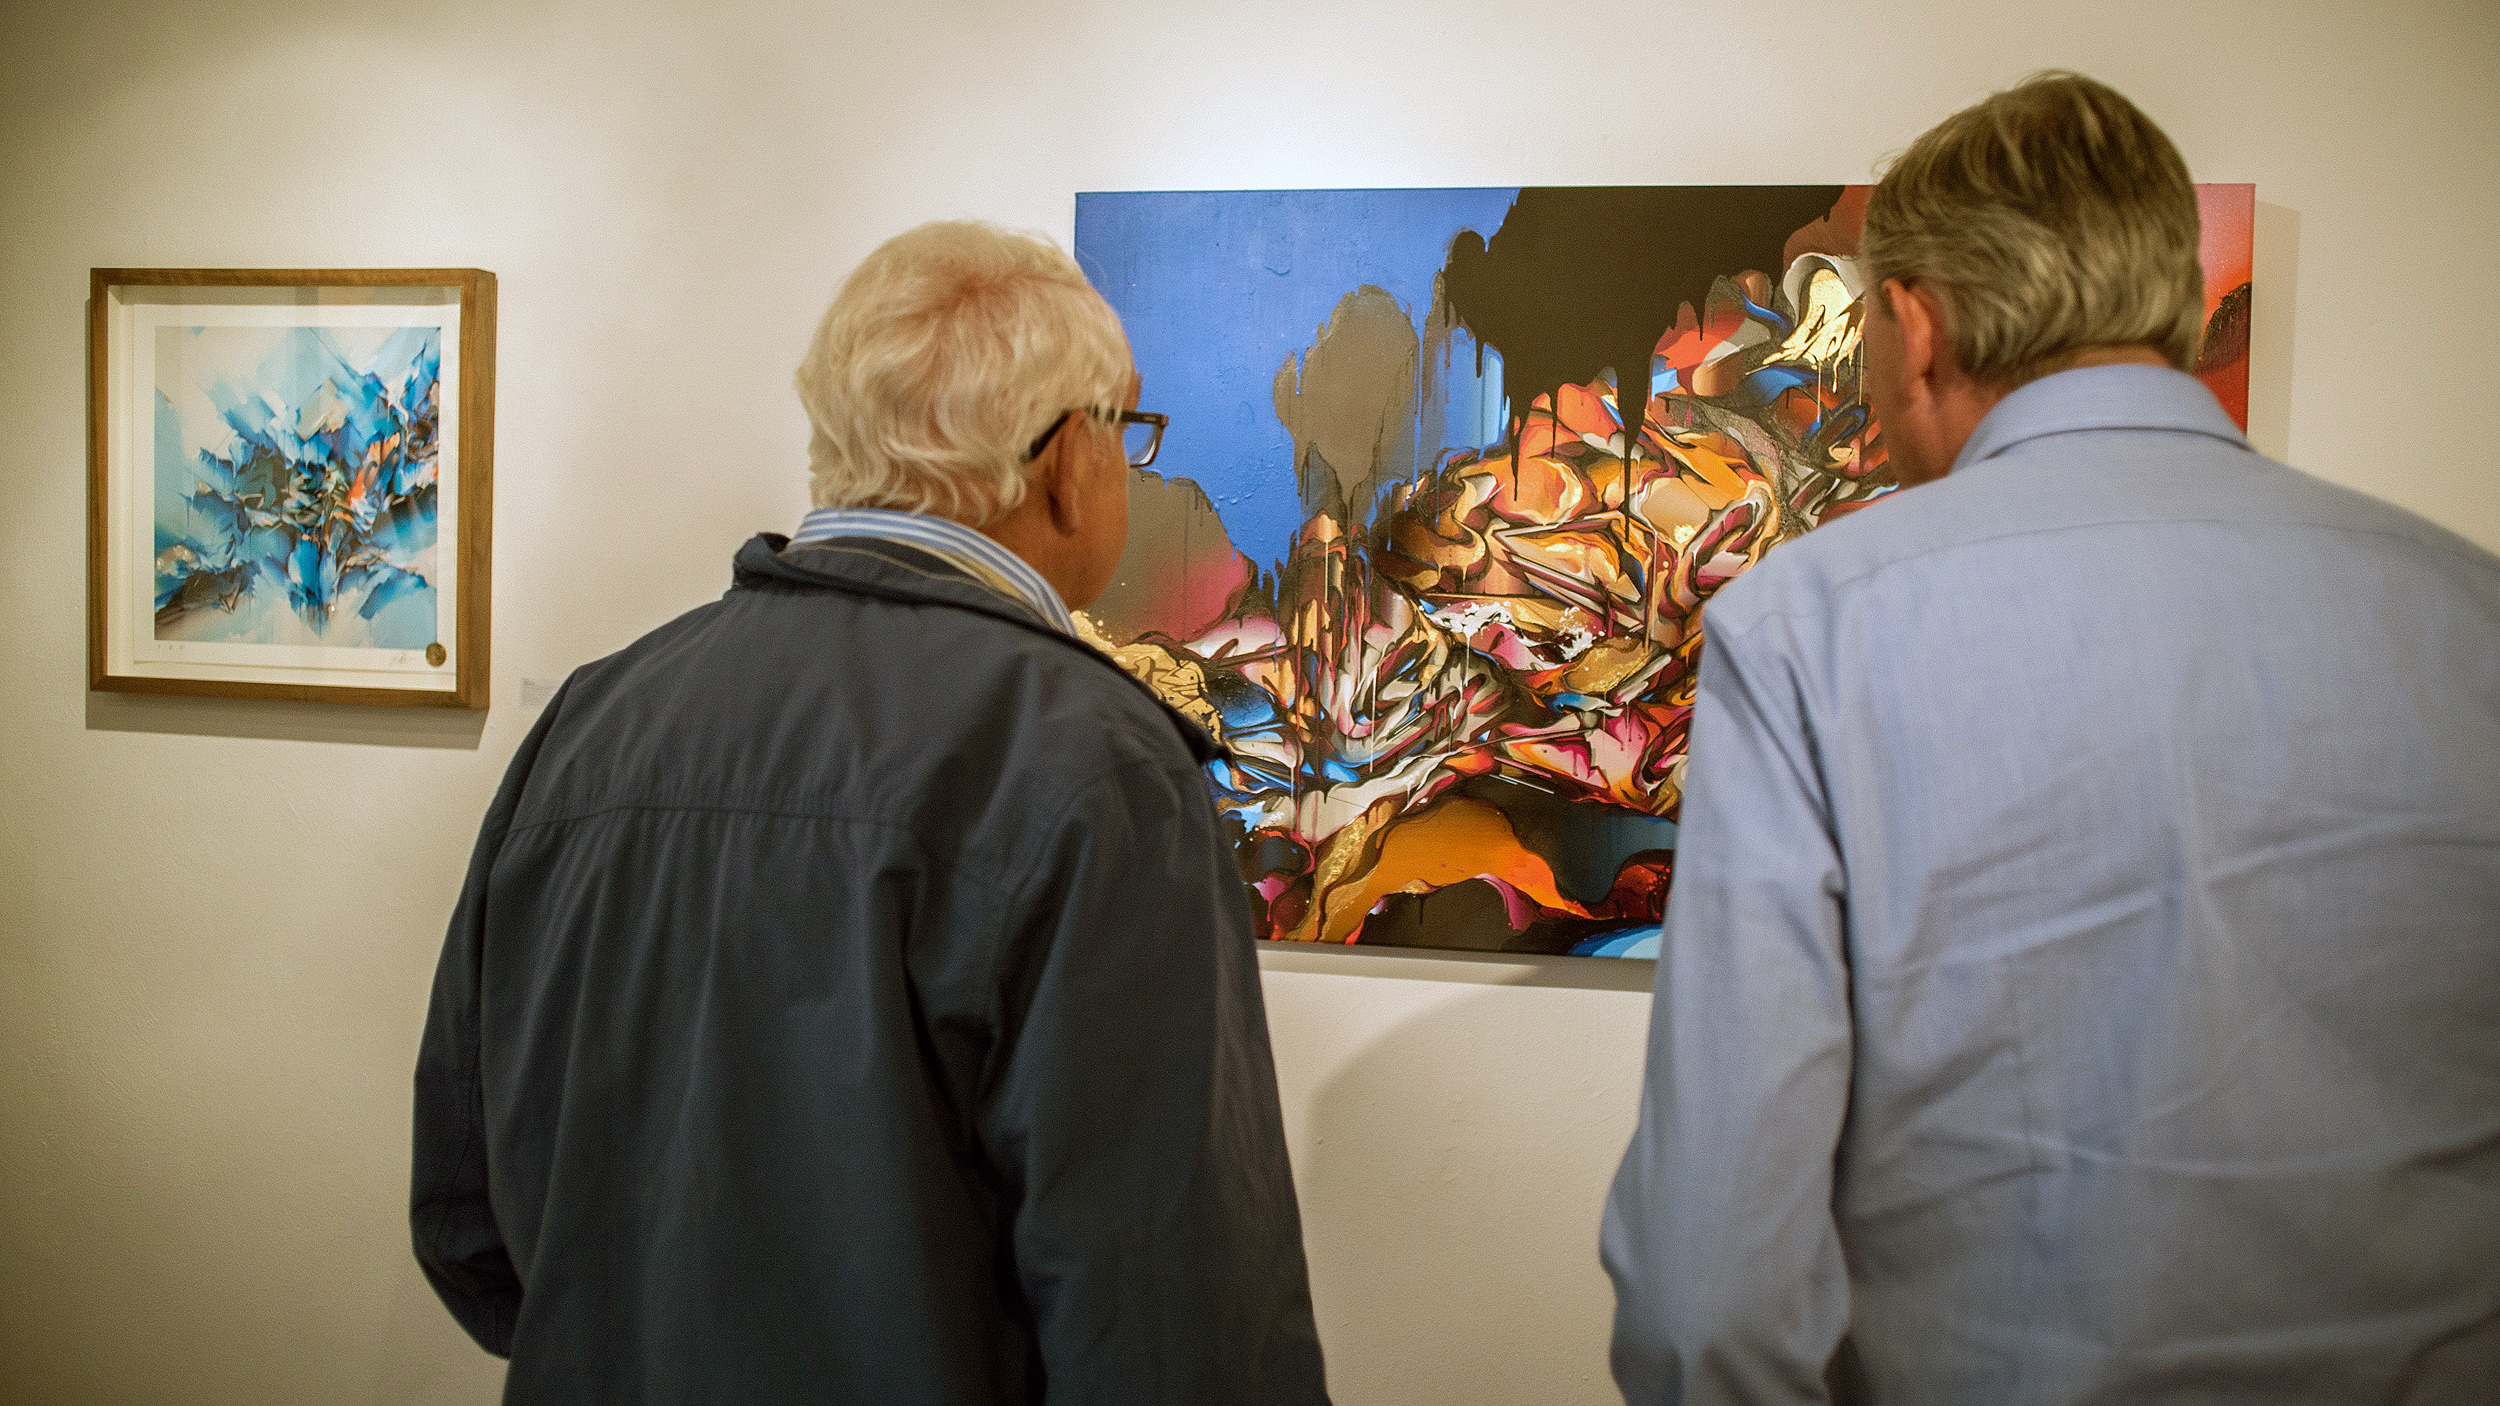 A work by Does - Authenticus exhibition amsterdam dampkring gallery 9